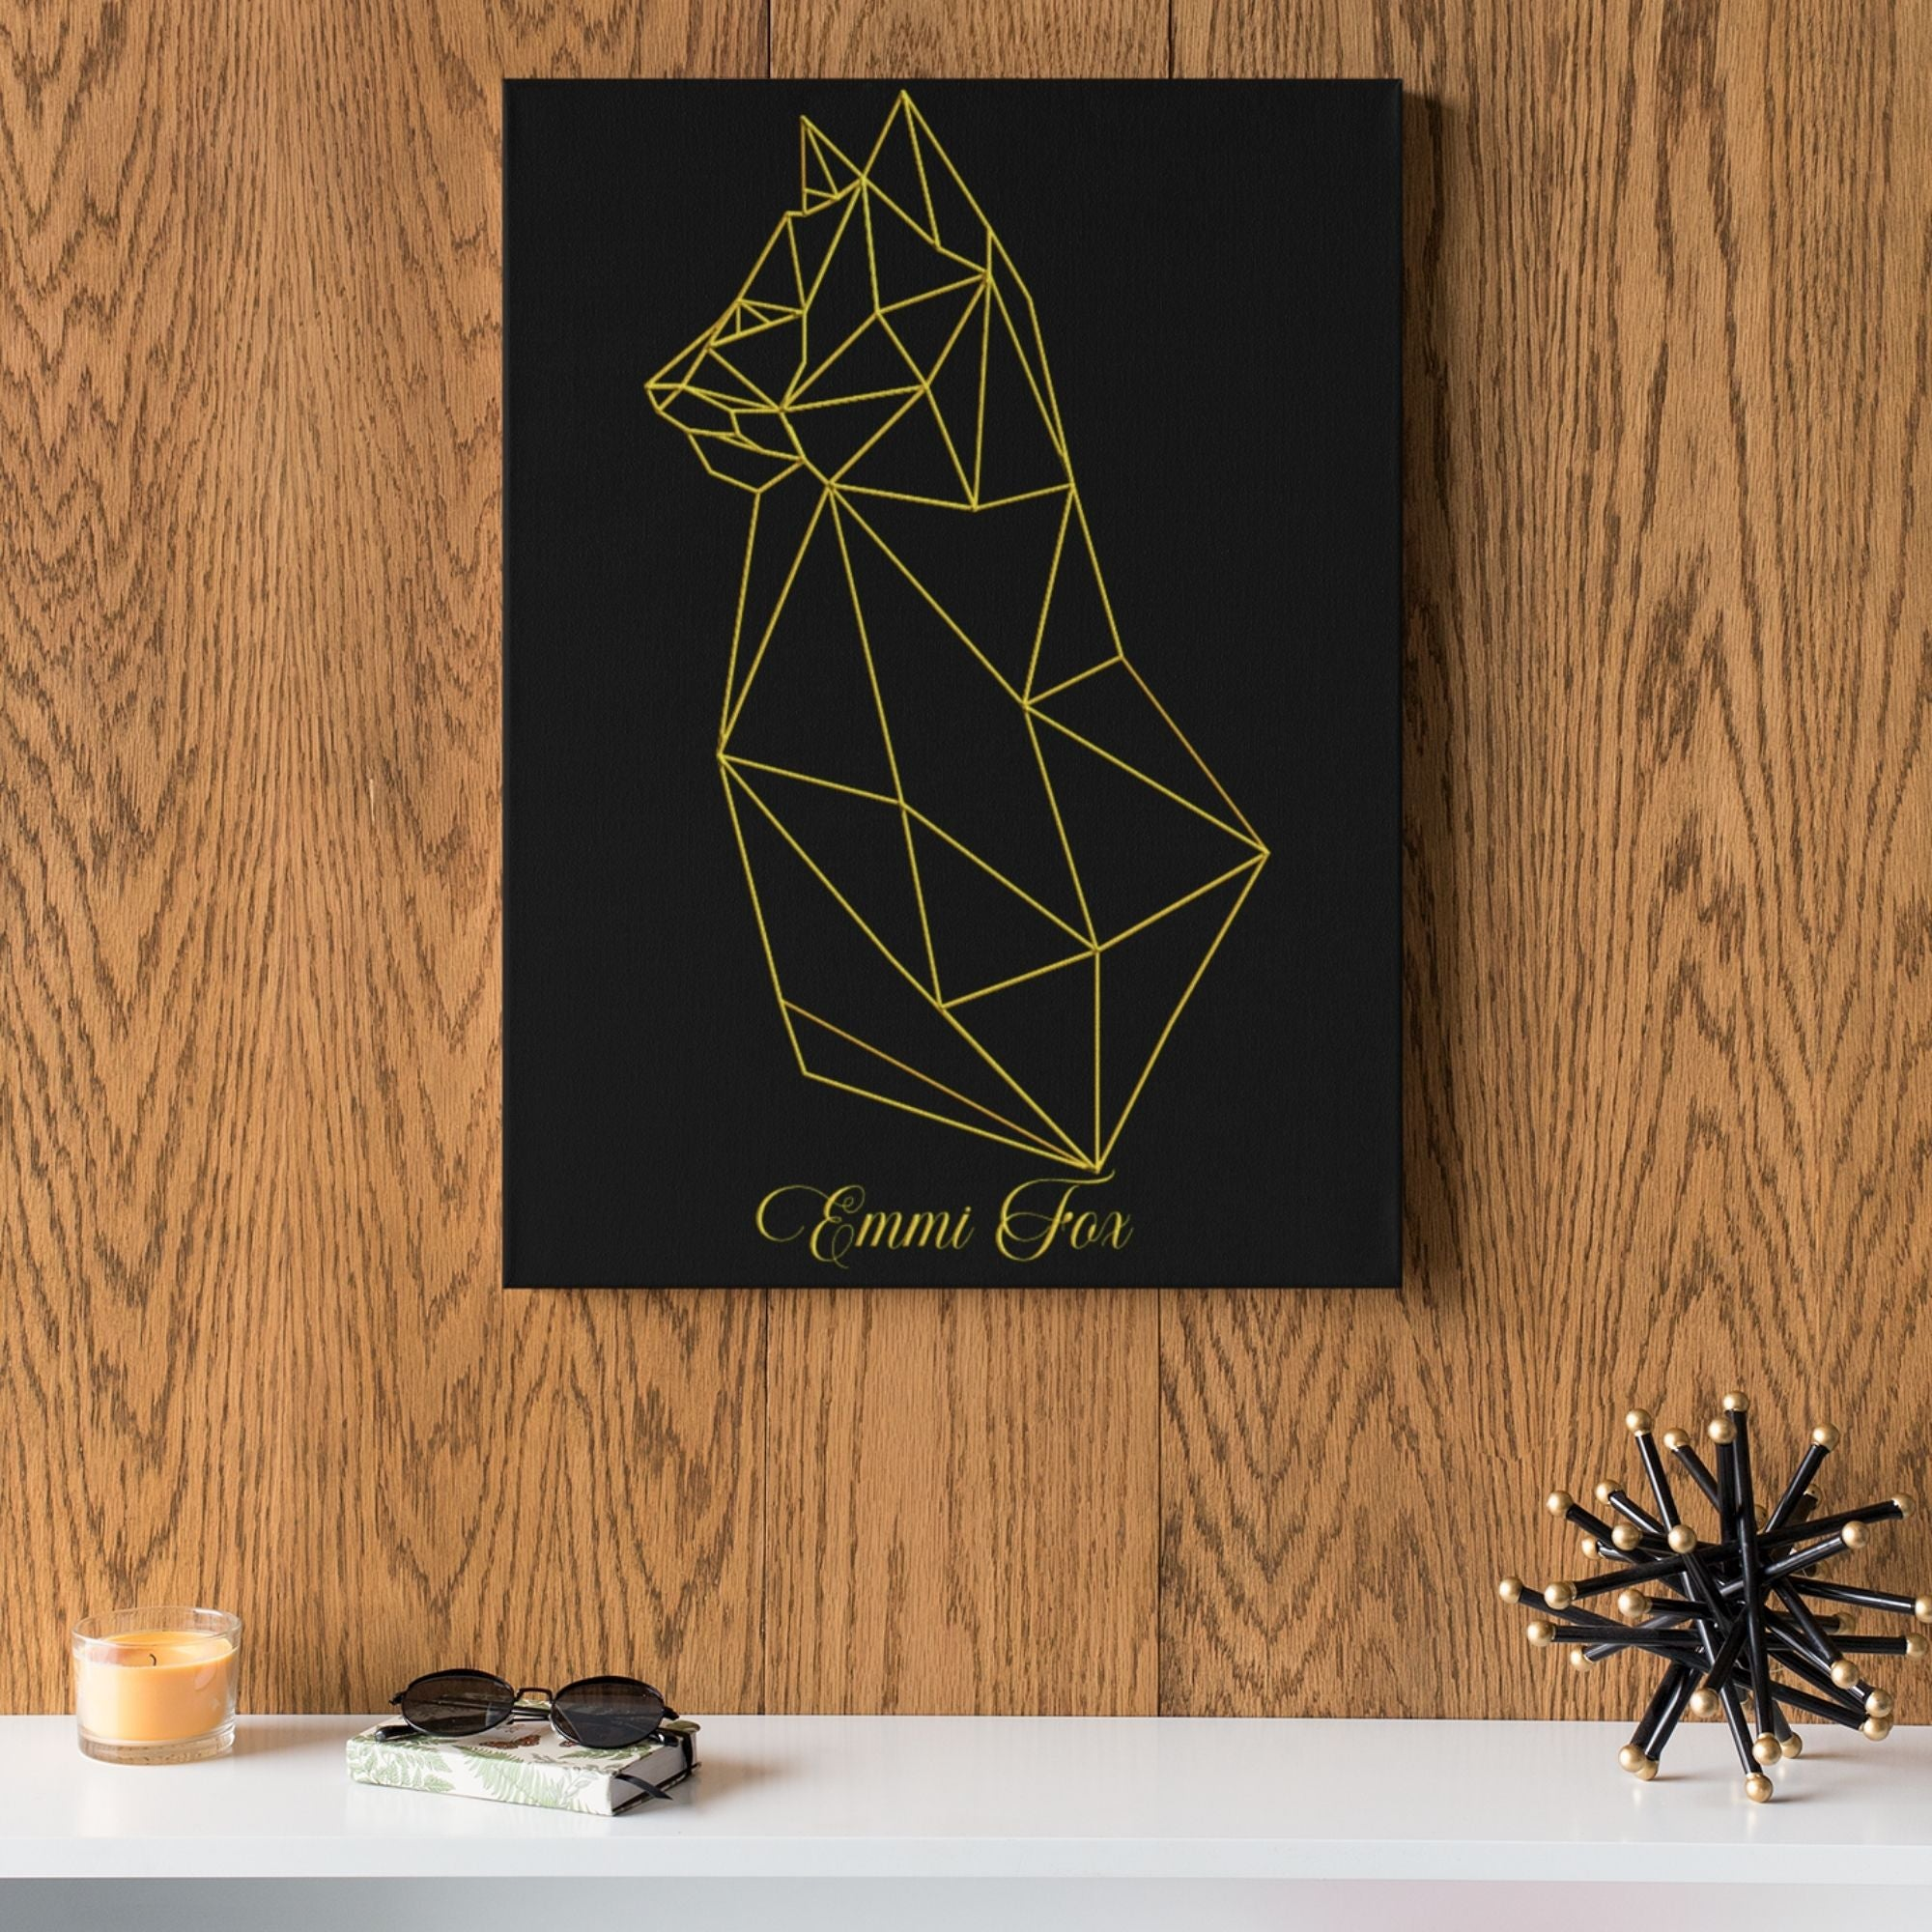 Geometric Cat | Aluminium Fine-Art-Kunstdruck